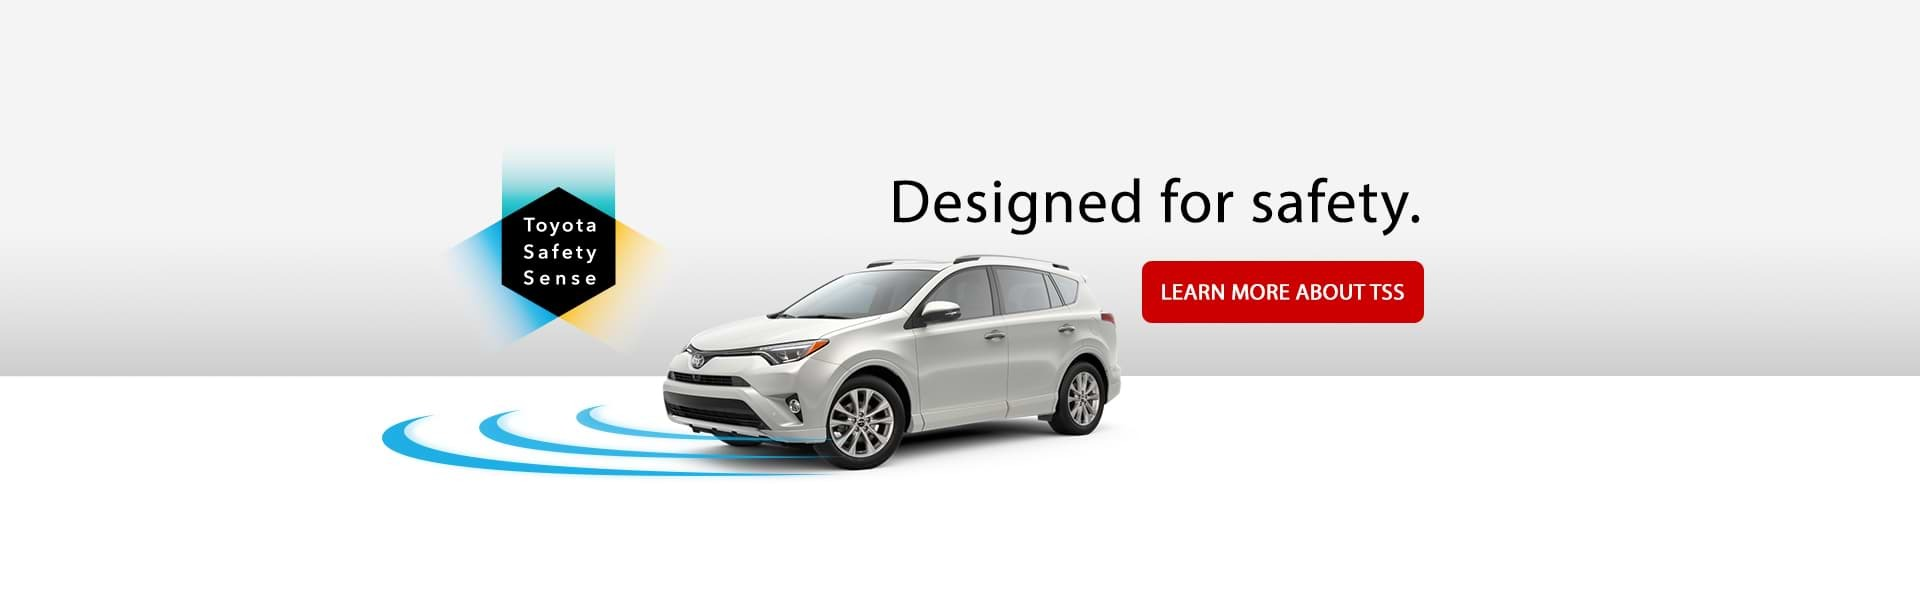 Toyota Dealership Chattanooga TN Used Cars Toyota of Cleveland